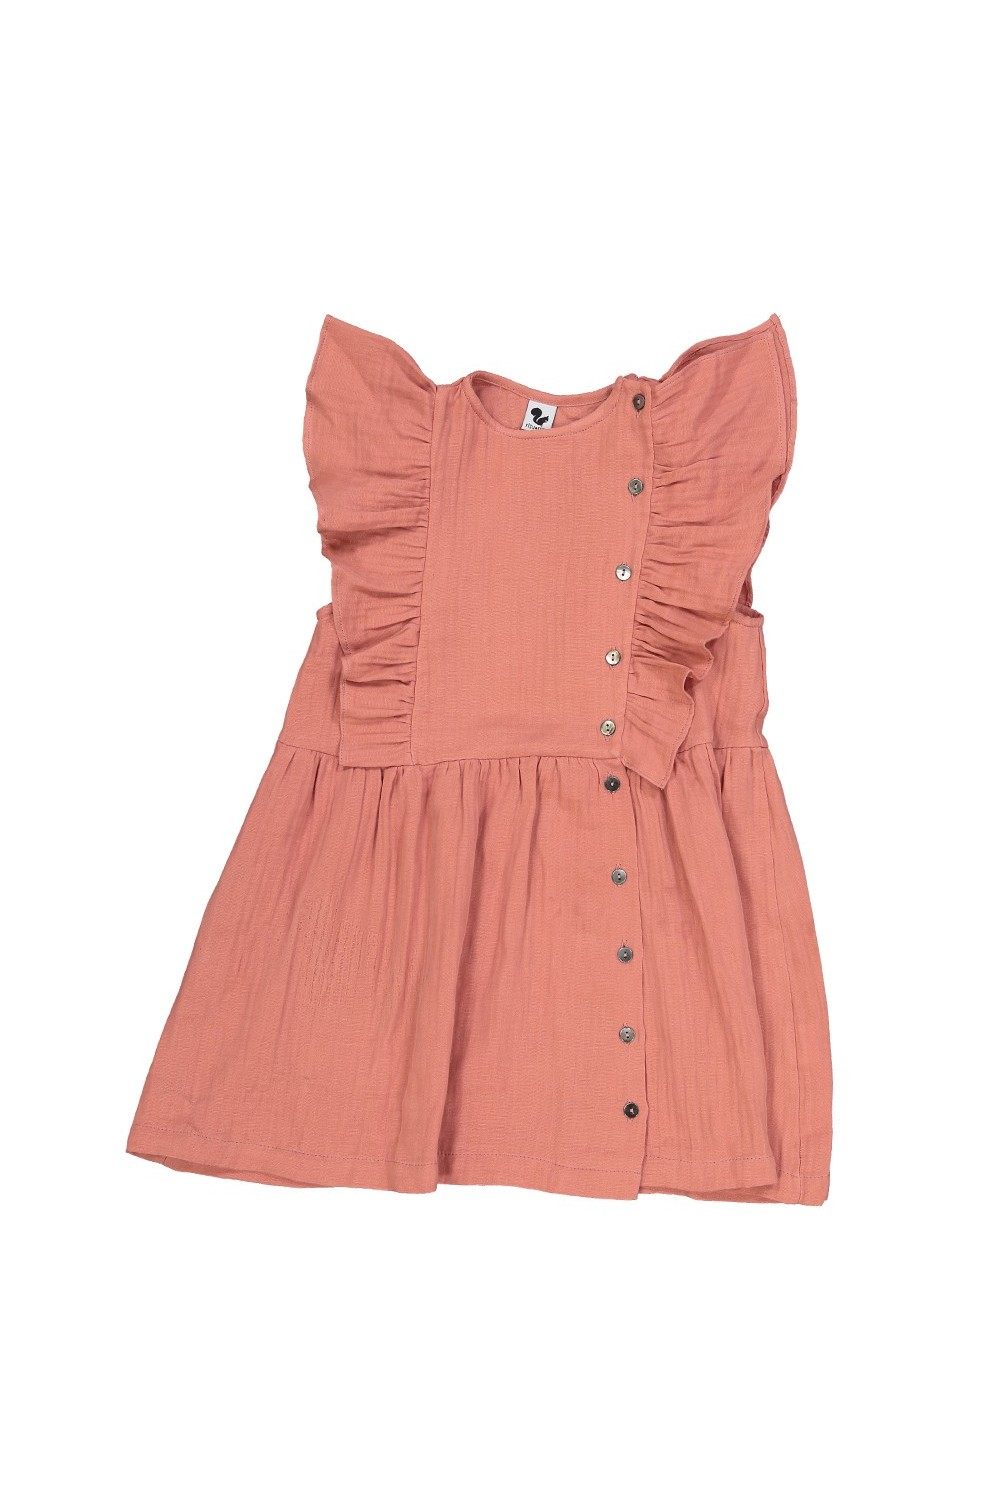 red organic cotton girl's alizee summer dress